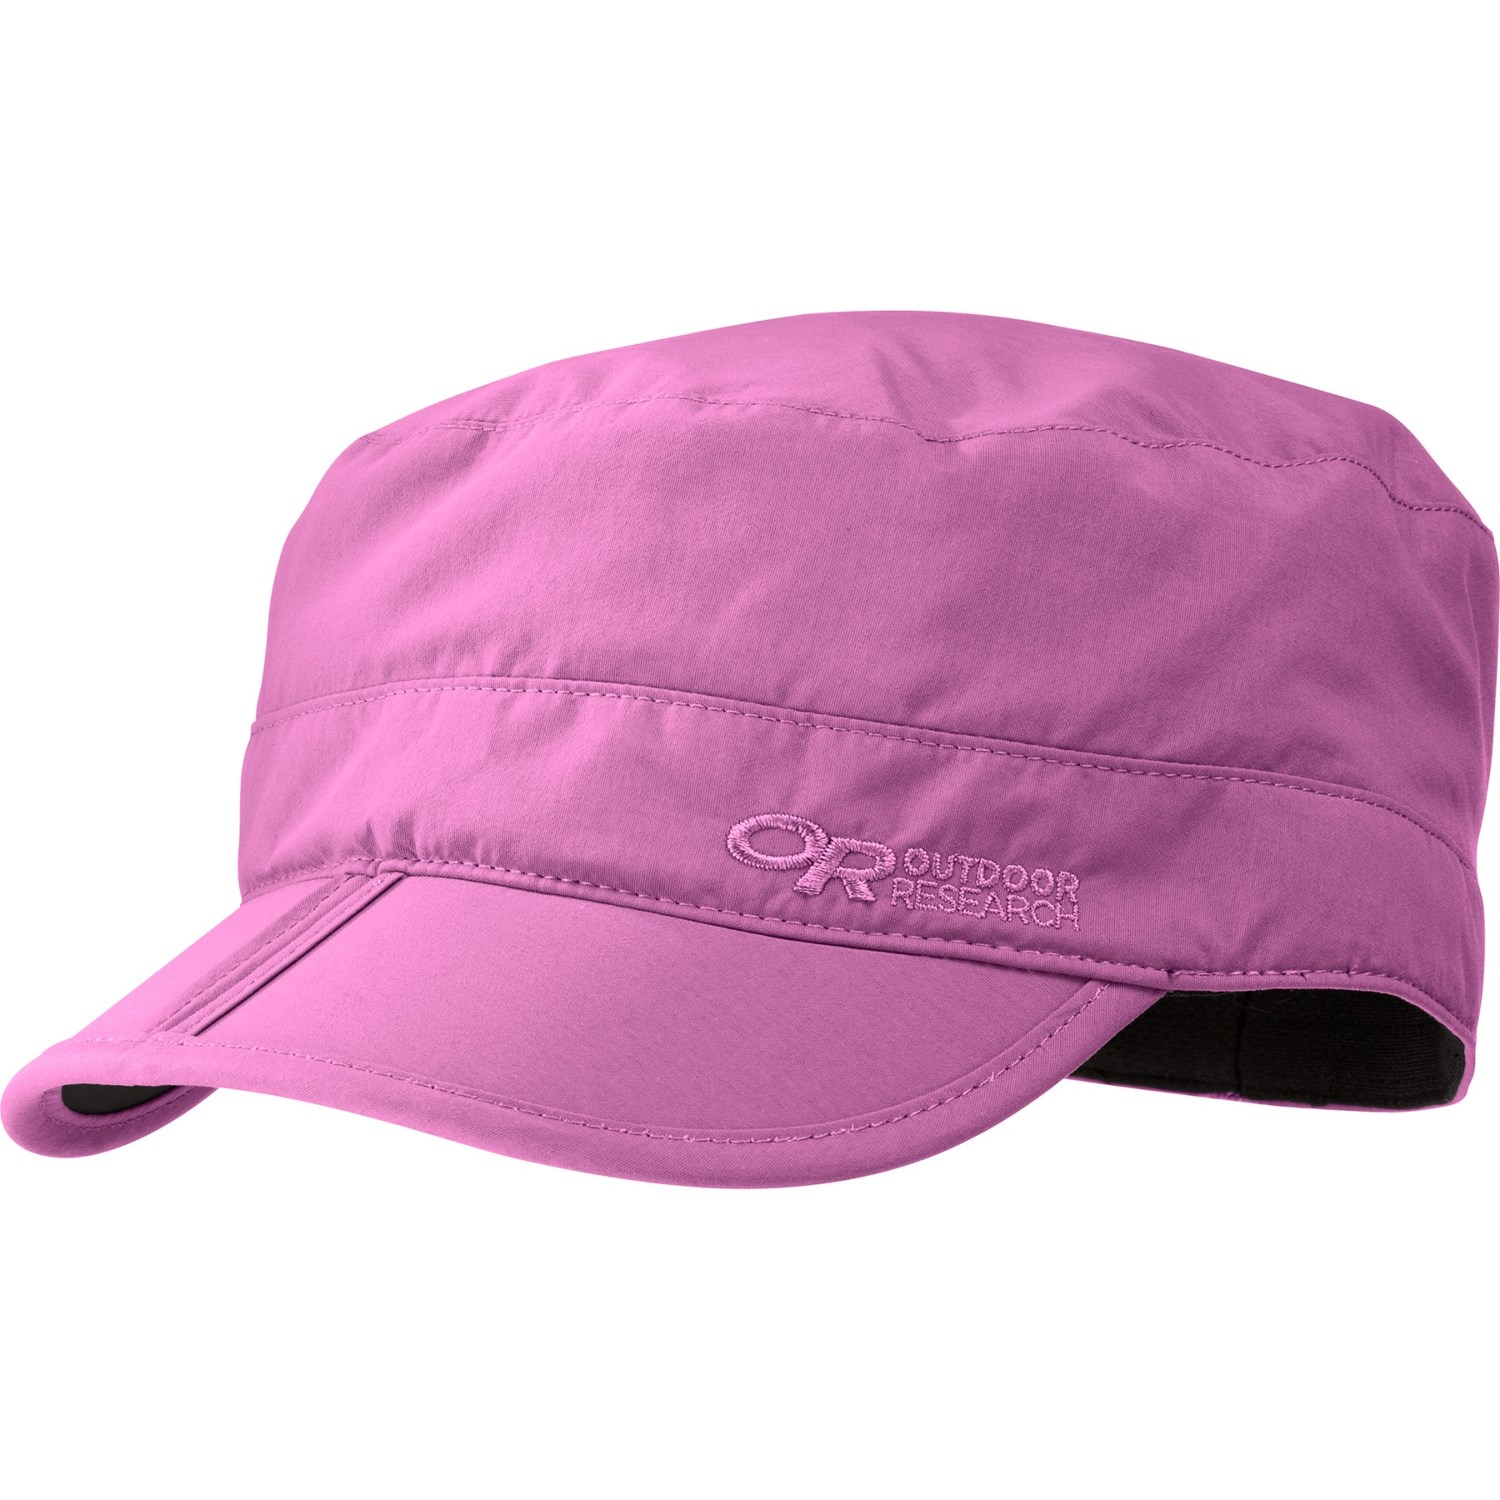 8500c690f0e97 Outdoor Research Radar Pocket Hat (For Men and Women) 6631P 74 on ...